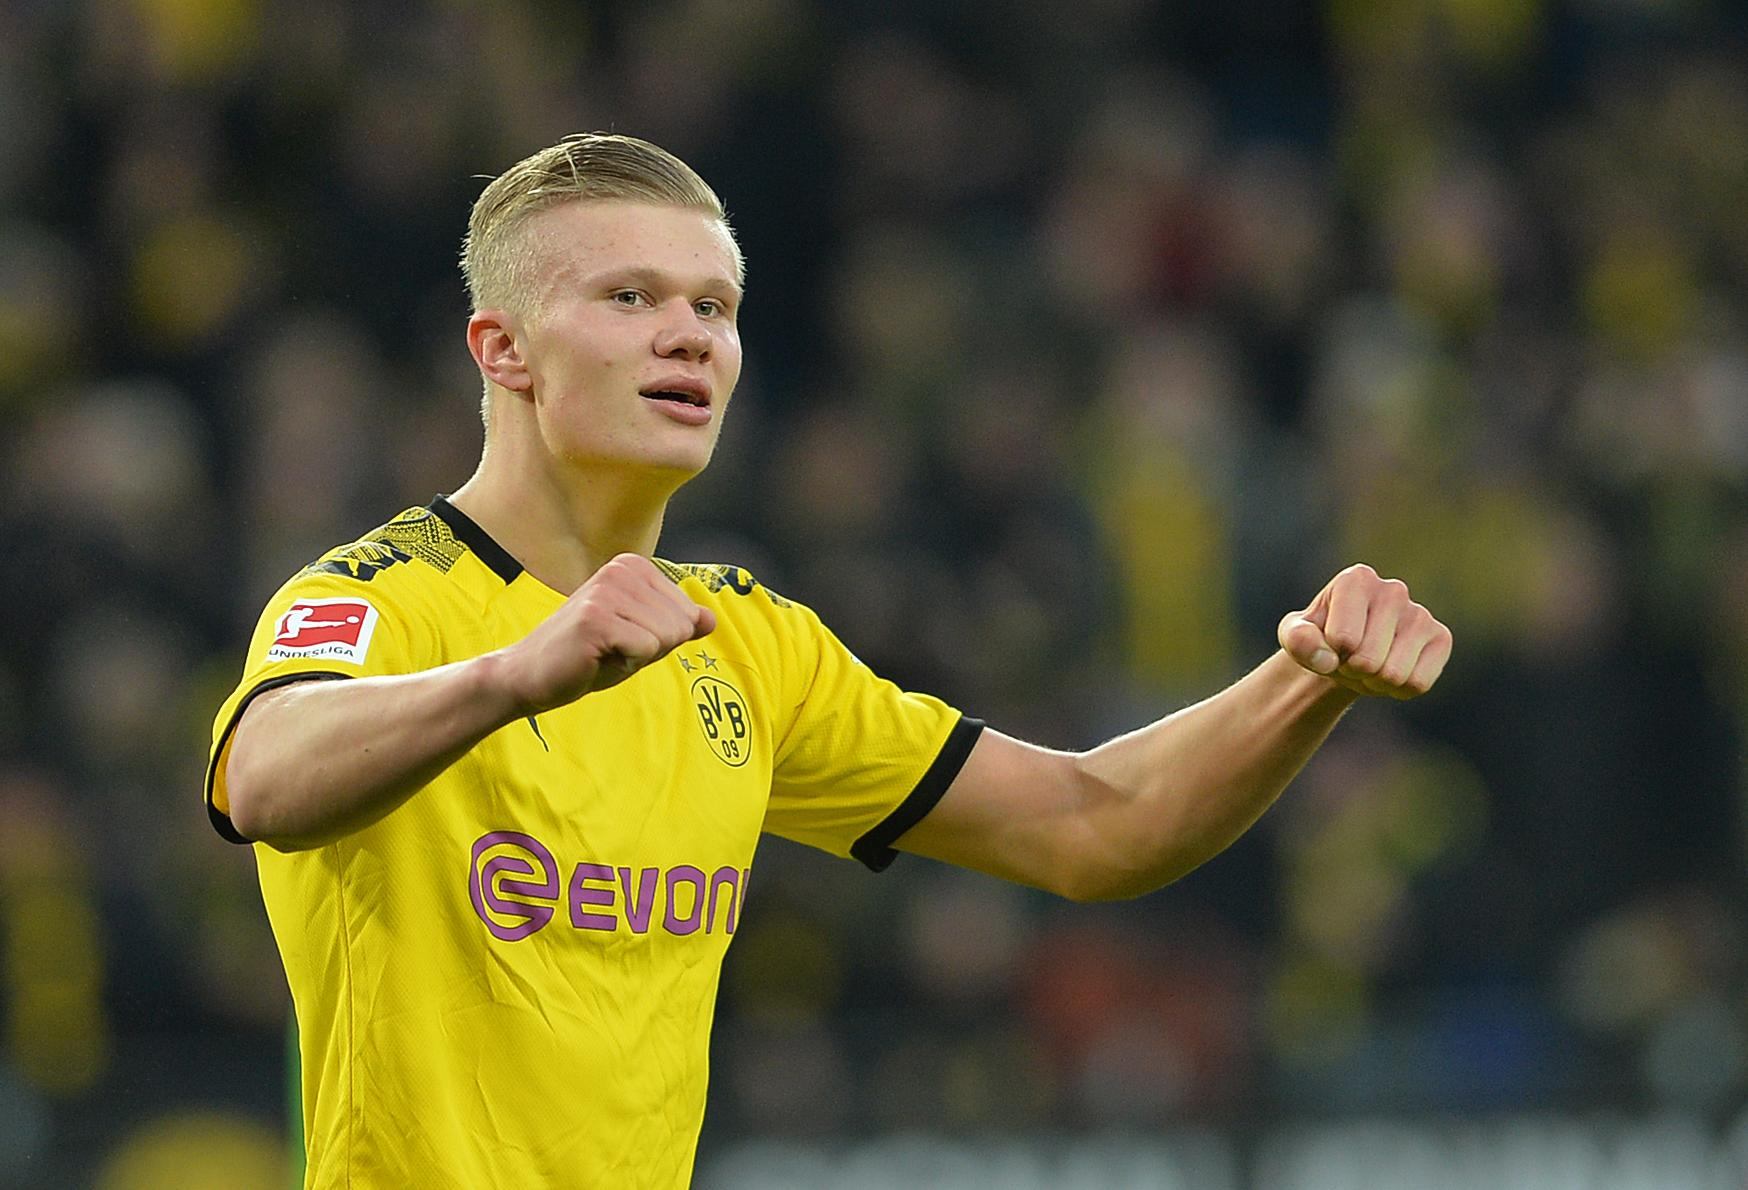 Erling Haaland Scores Two More Goals For Borussia Dortmund